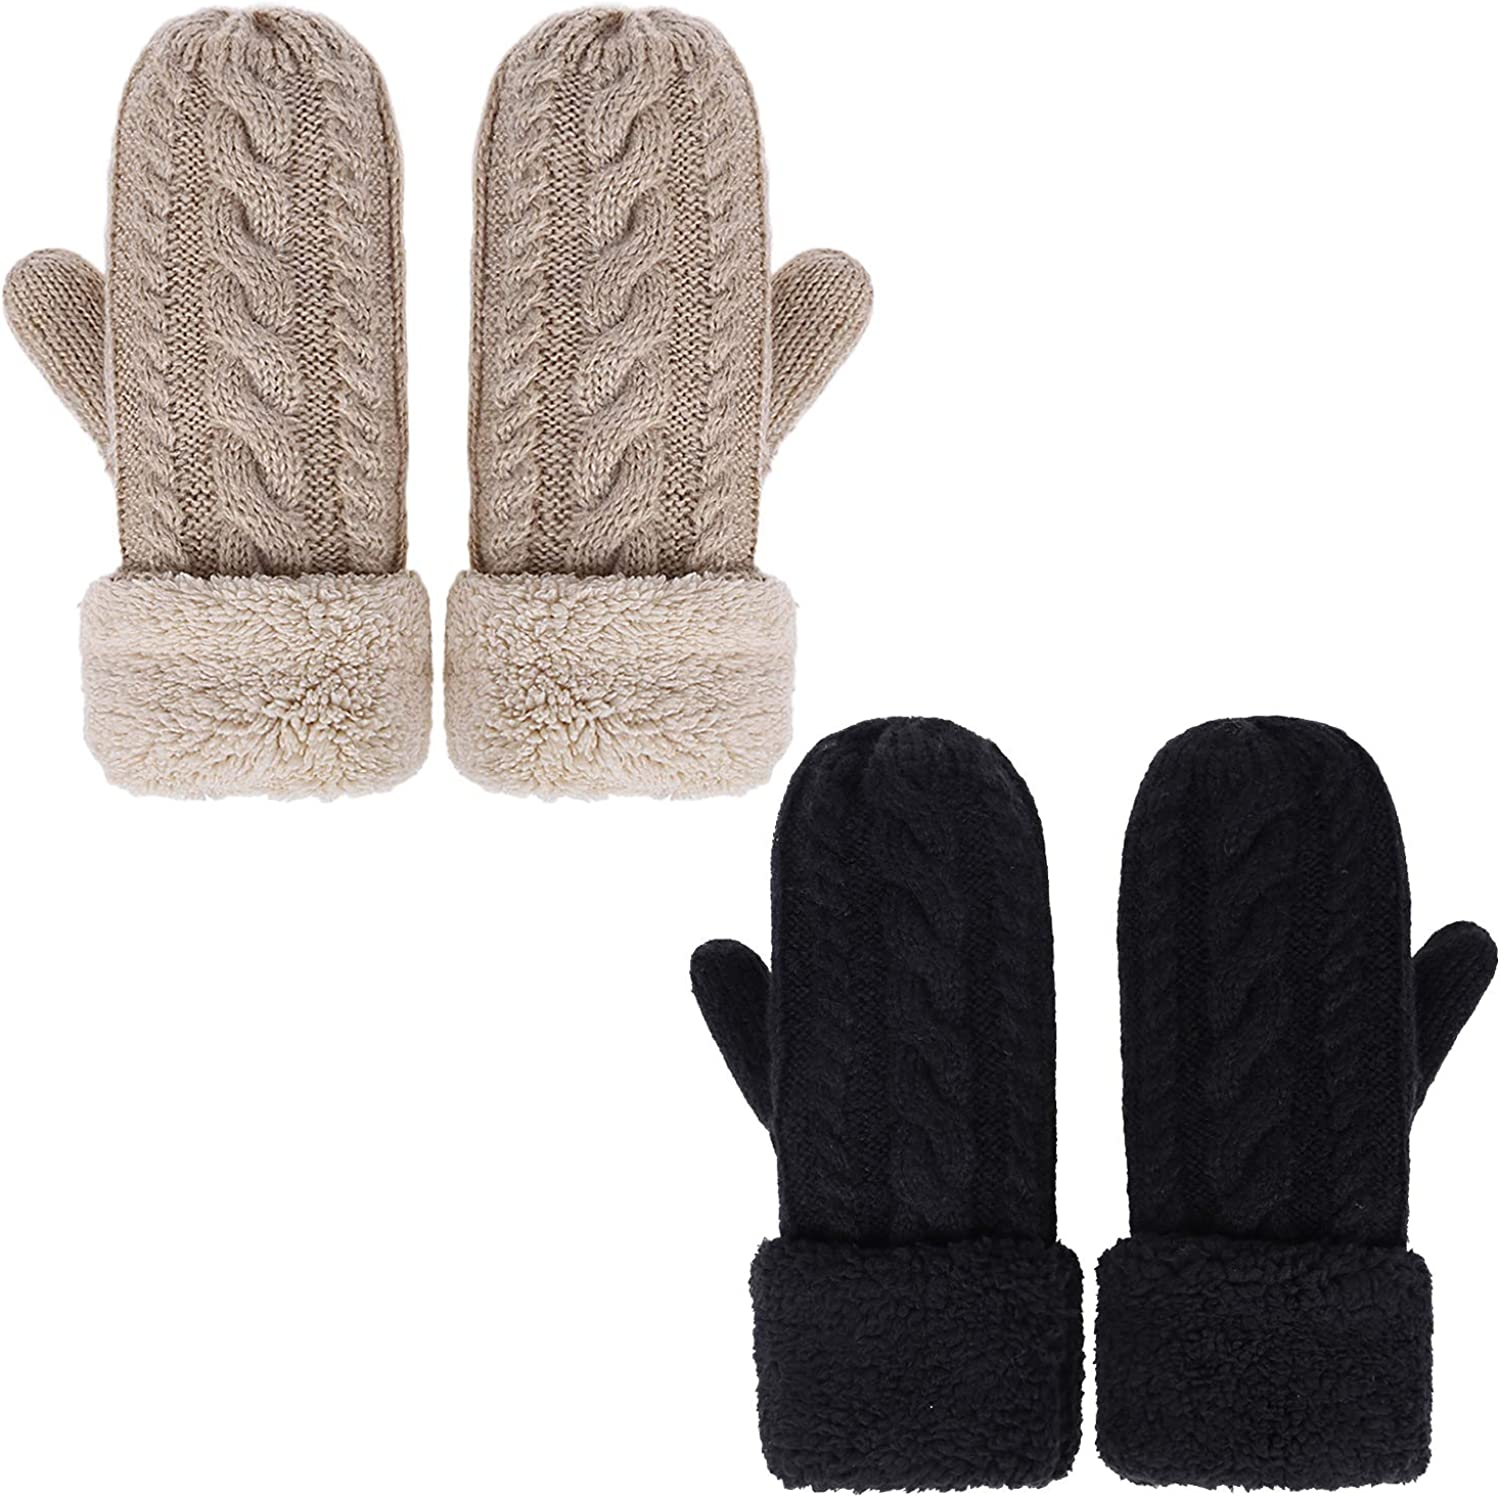 Womens Winter Gloves Knit Warm Mittens for Women Gifts with Plush Lining Cold Weather Accessories